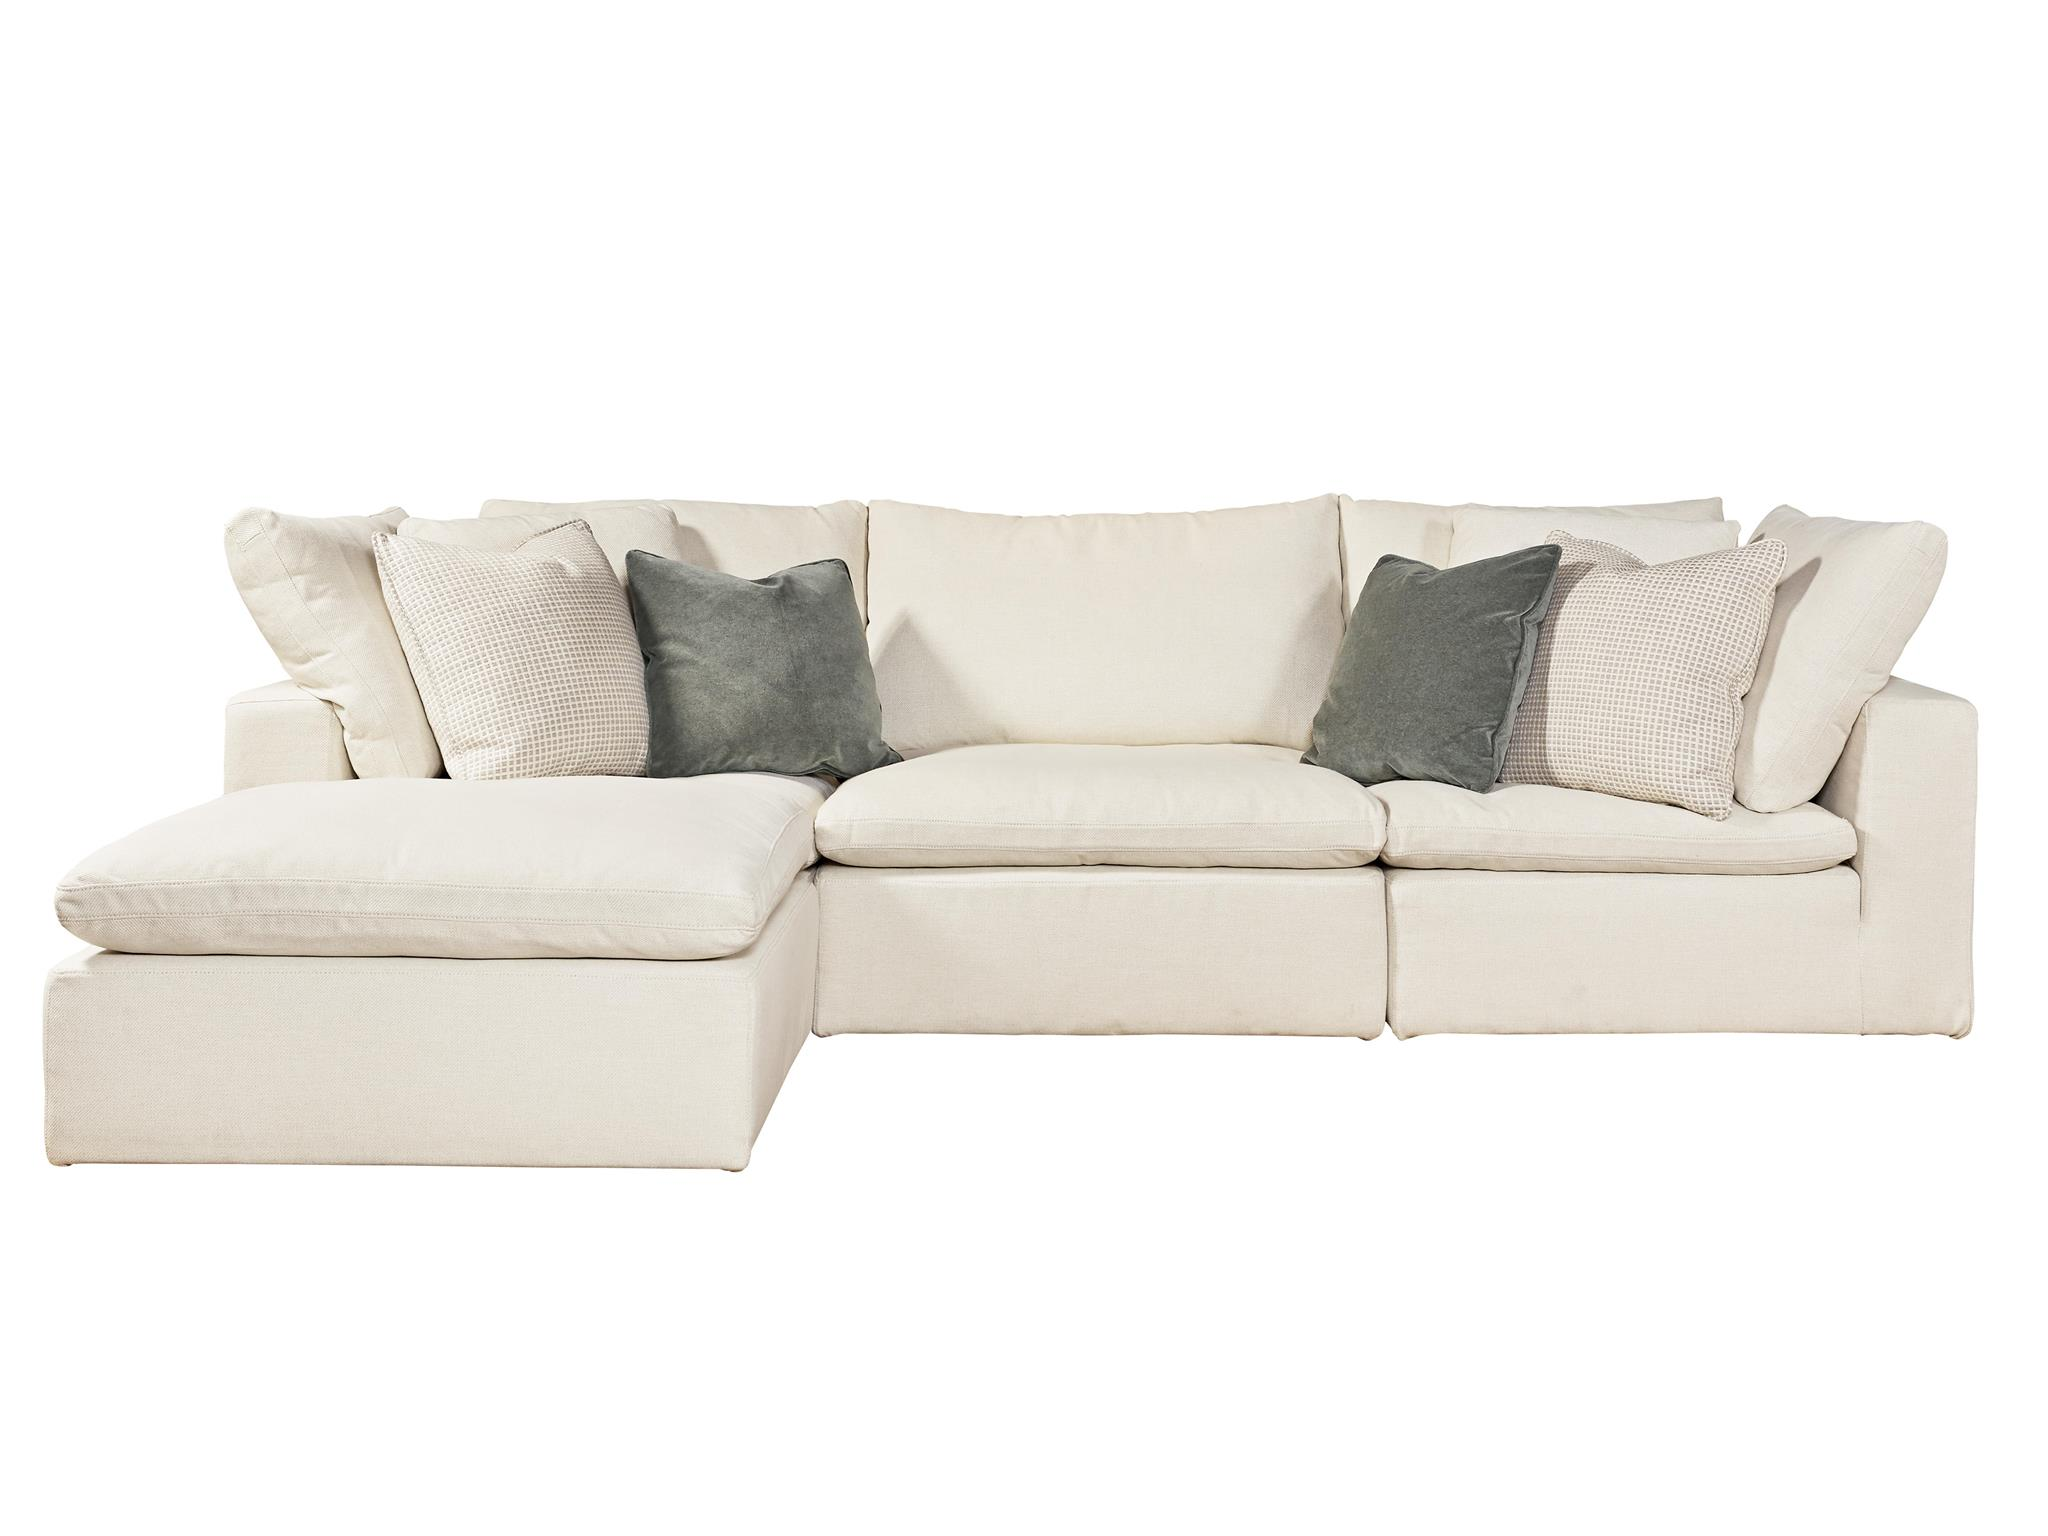 palmer sofa cheap office sofas uk universal furniture curated sectional 4 piece